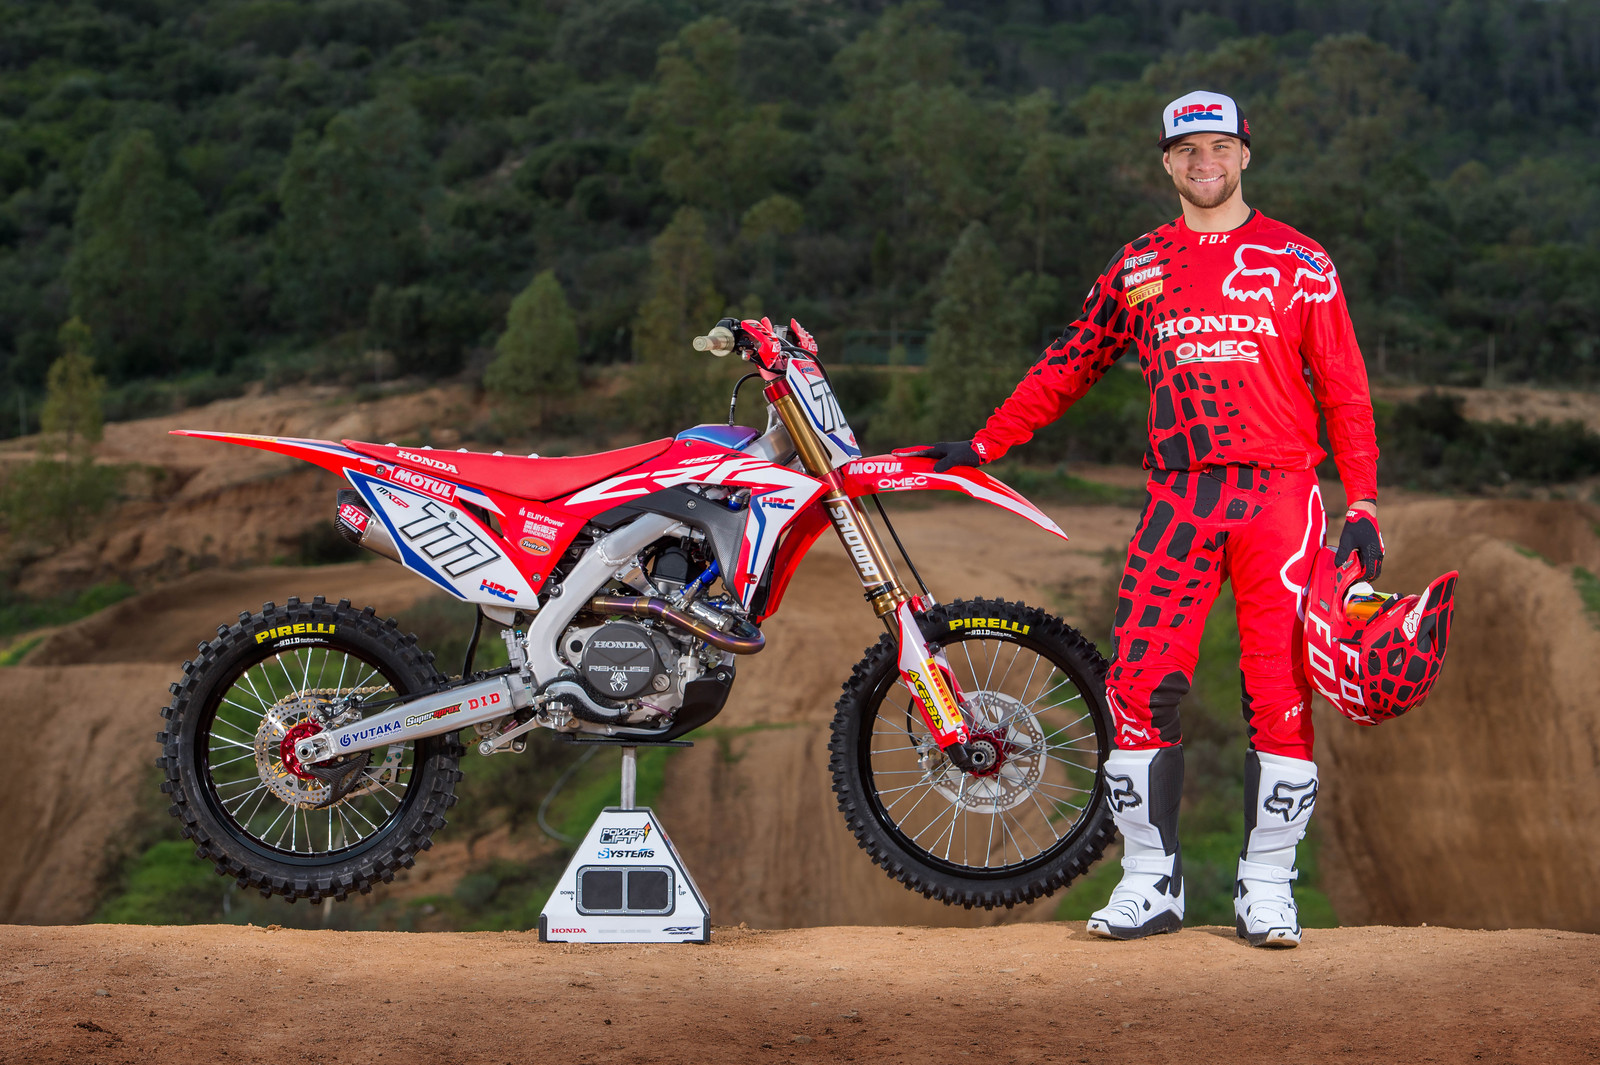 Evgeny Bobryshev and his 2017 Honda HRC Gariboldi CRF450RW - First Look: 2017 Honda HRC MXGP and MX2 Team - Motocross Pictures - Vital MX